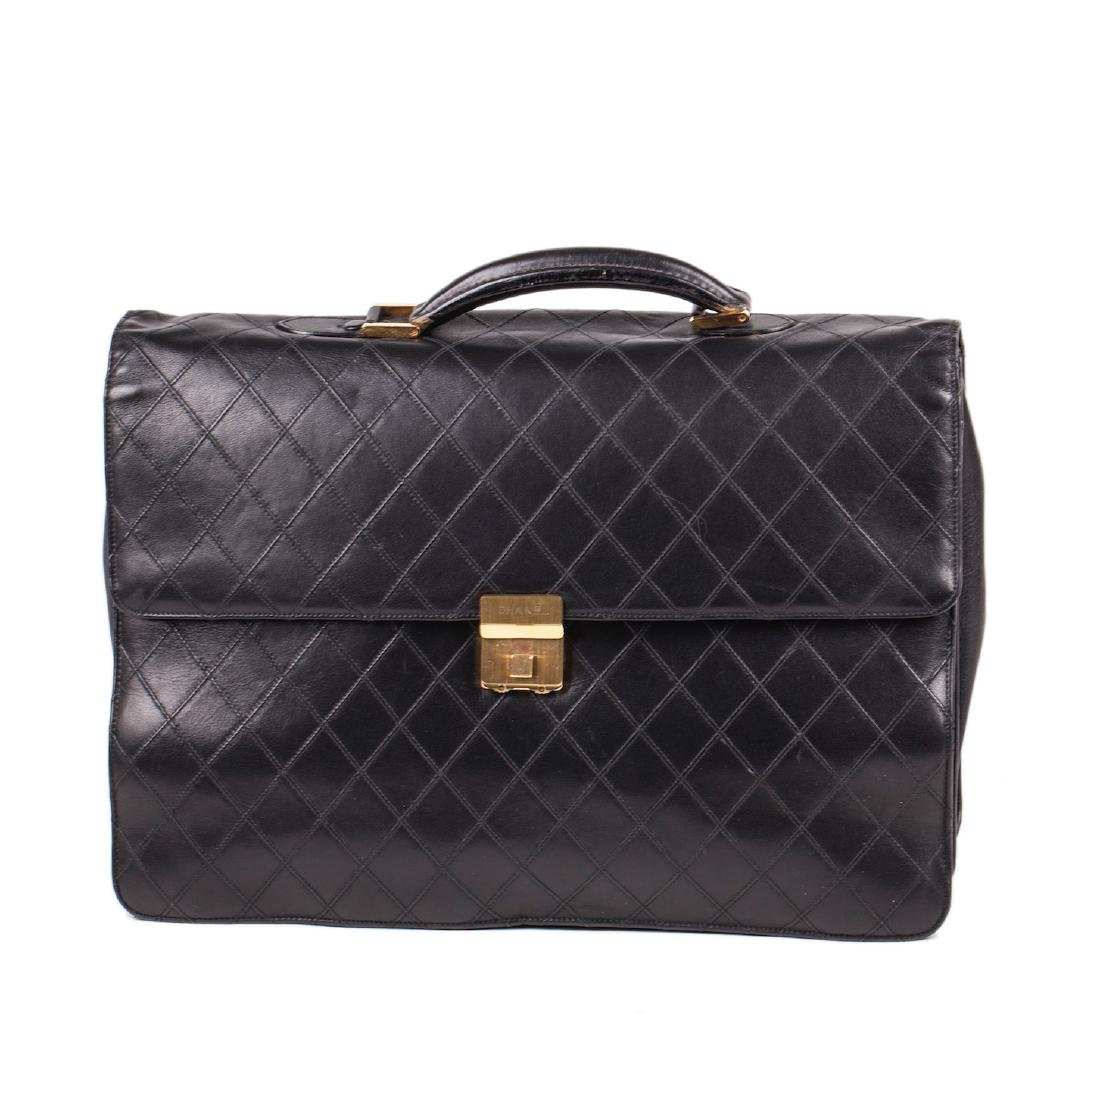 Leather Chanel briefcase